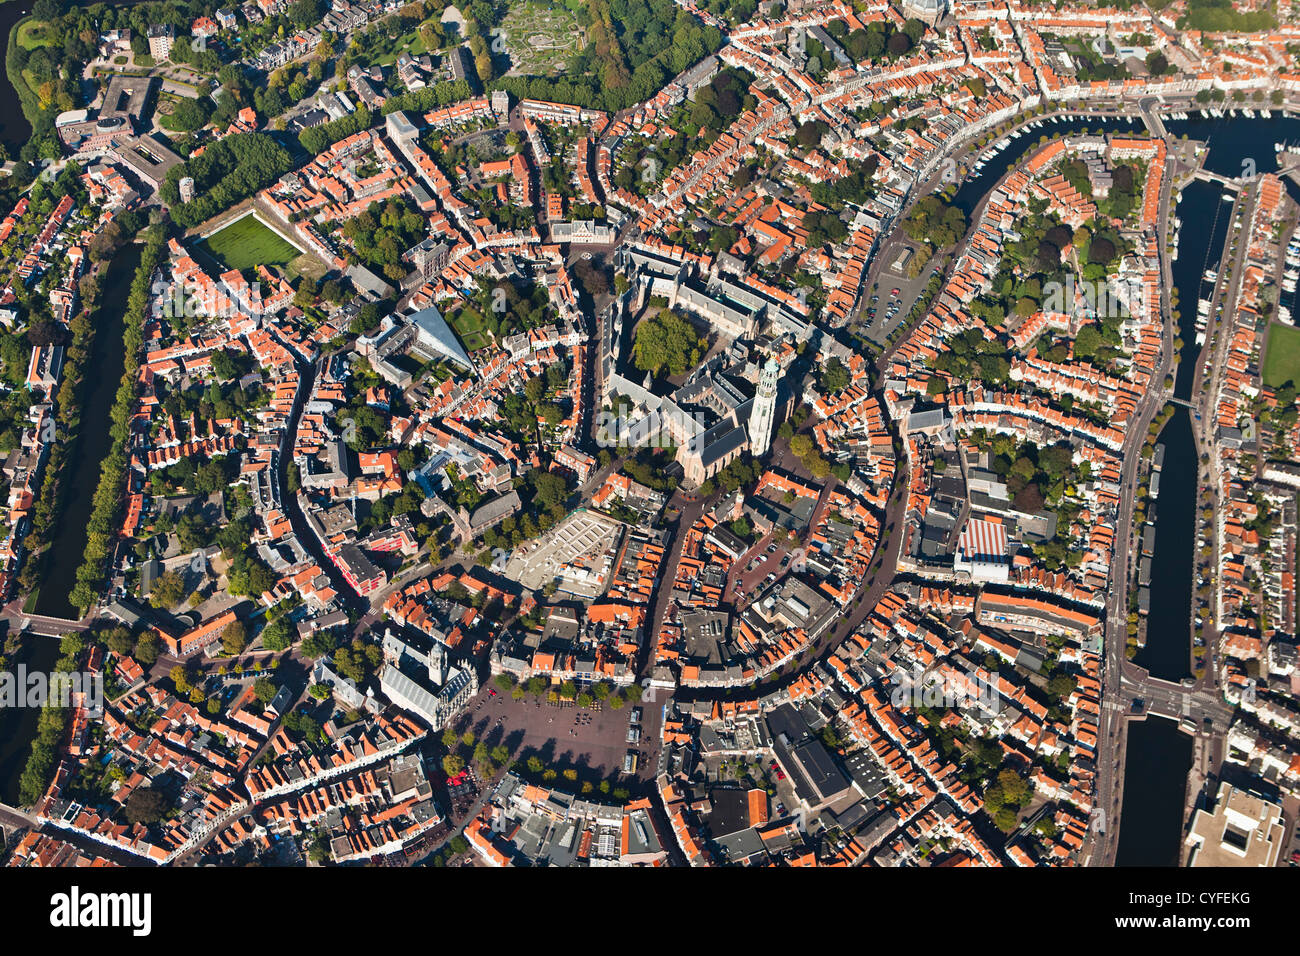 The Netherlands, Middelburg, City center. Aerial. Stock Photo